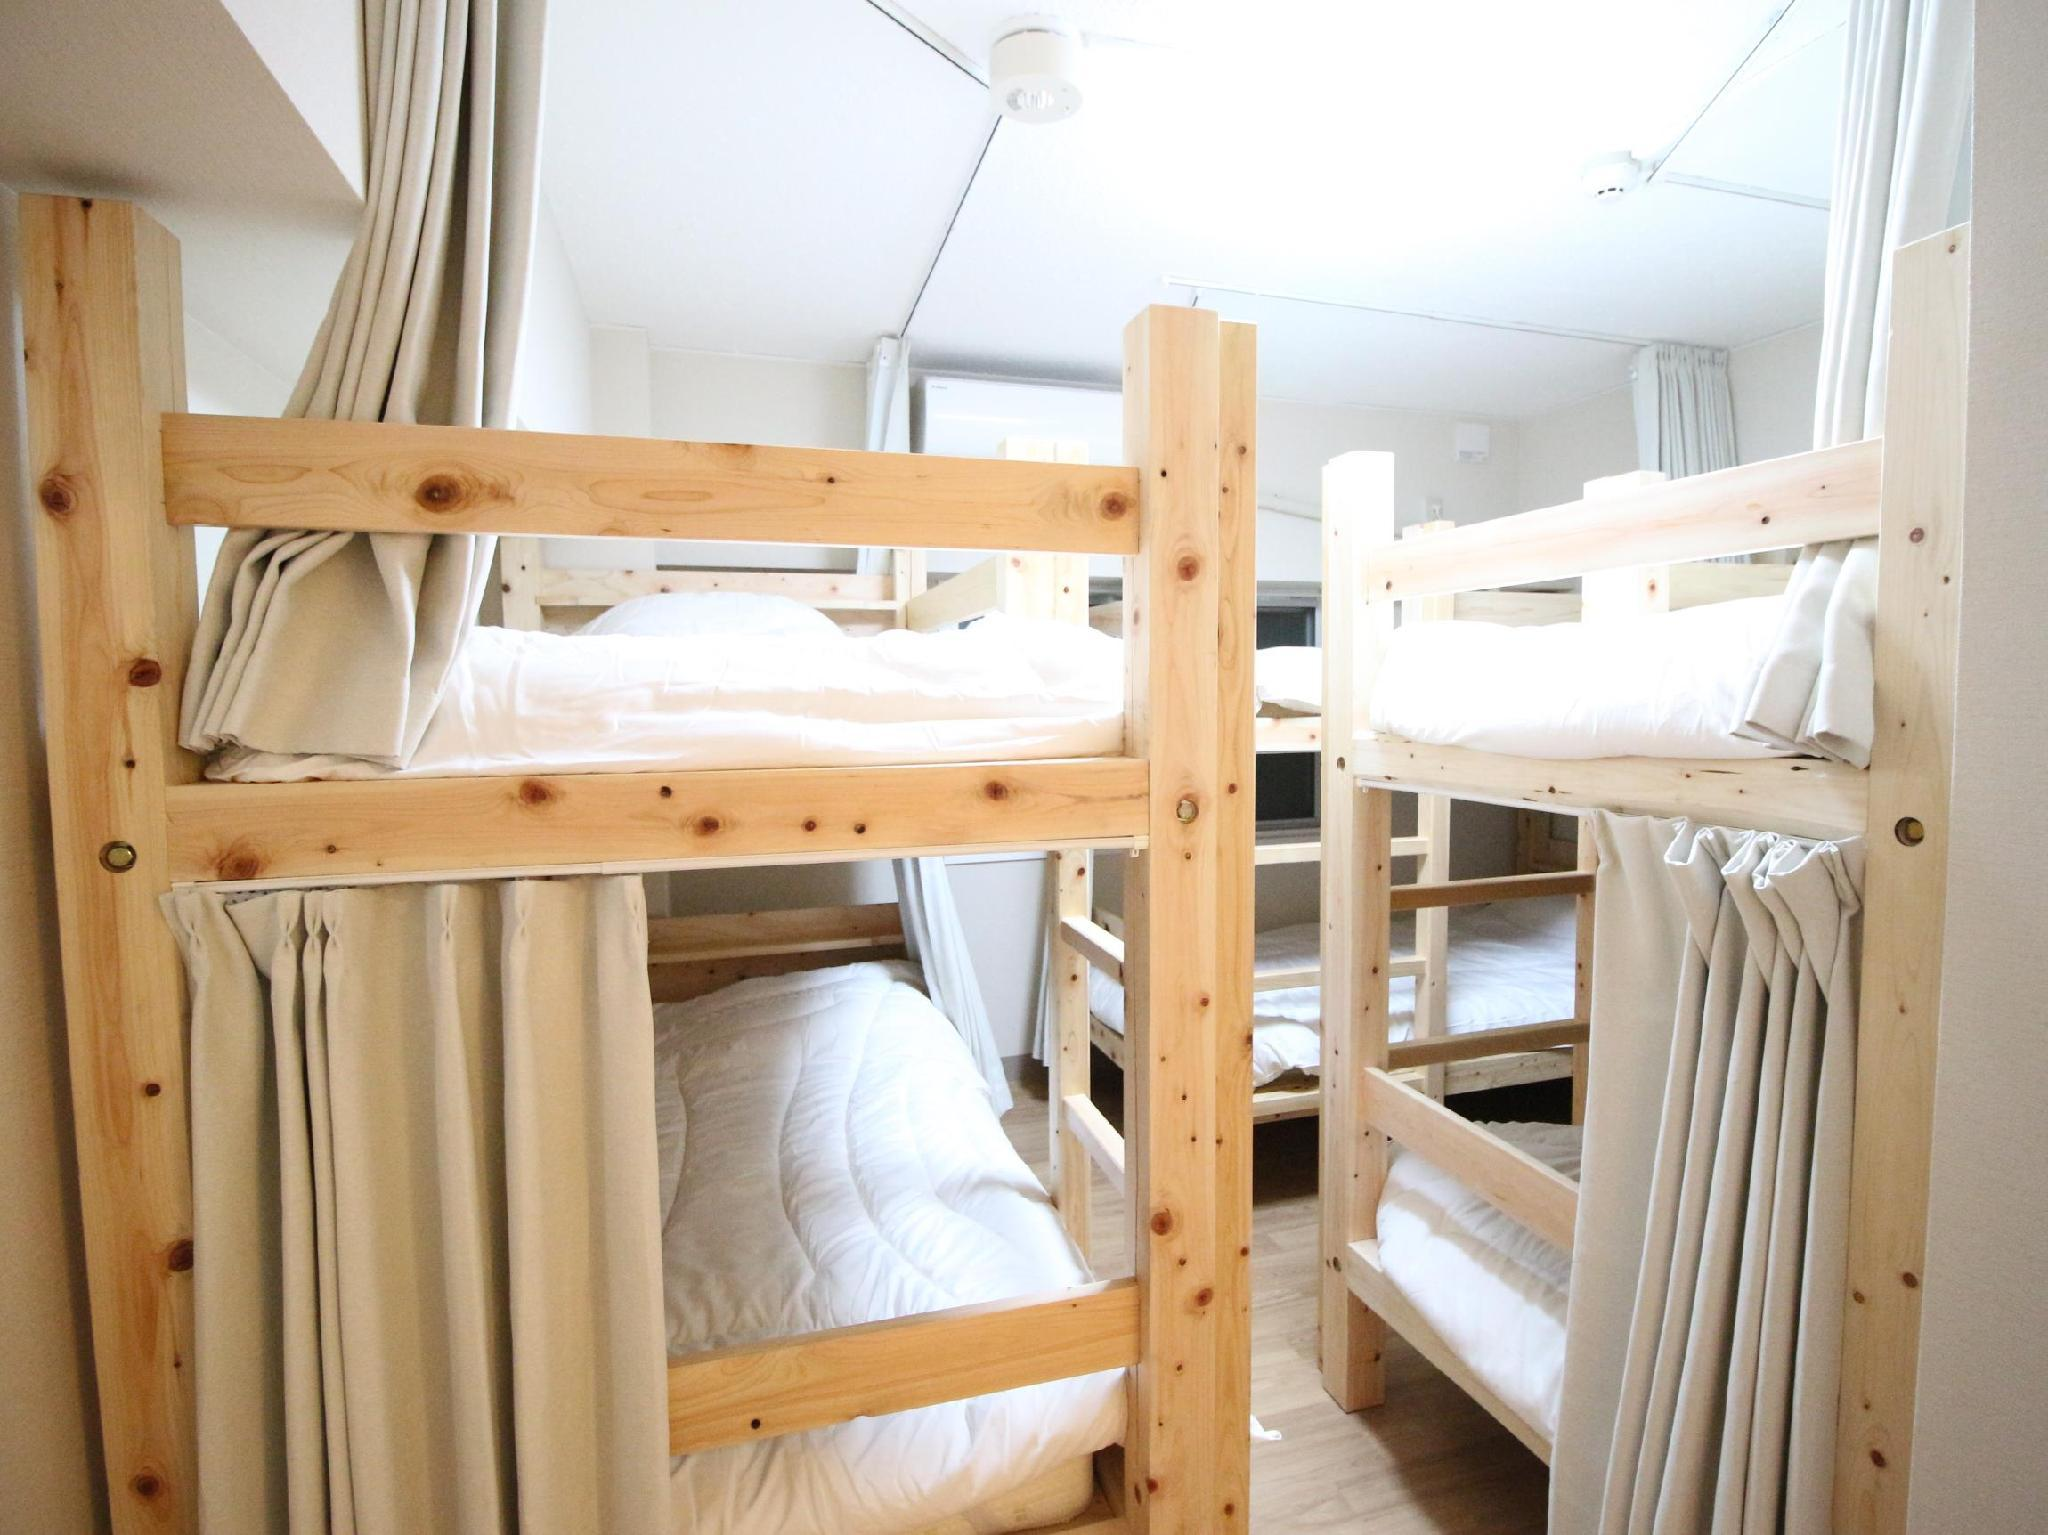 1 Personne dans Dortoir 6 Lits ‒ Femmes Seulement (1 Person in 6-Bed Dormitory - Female Only)